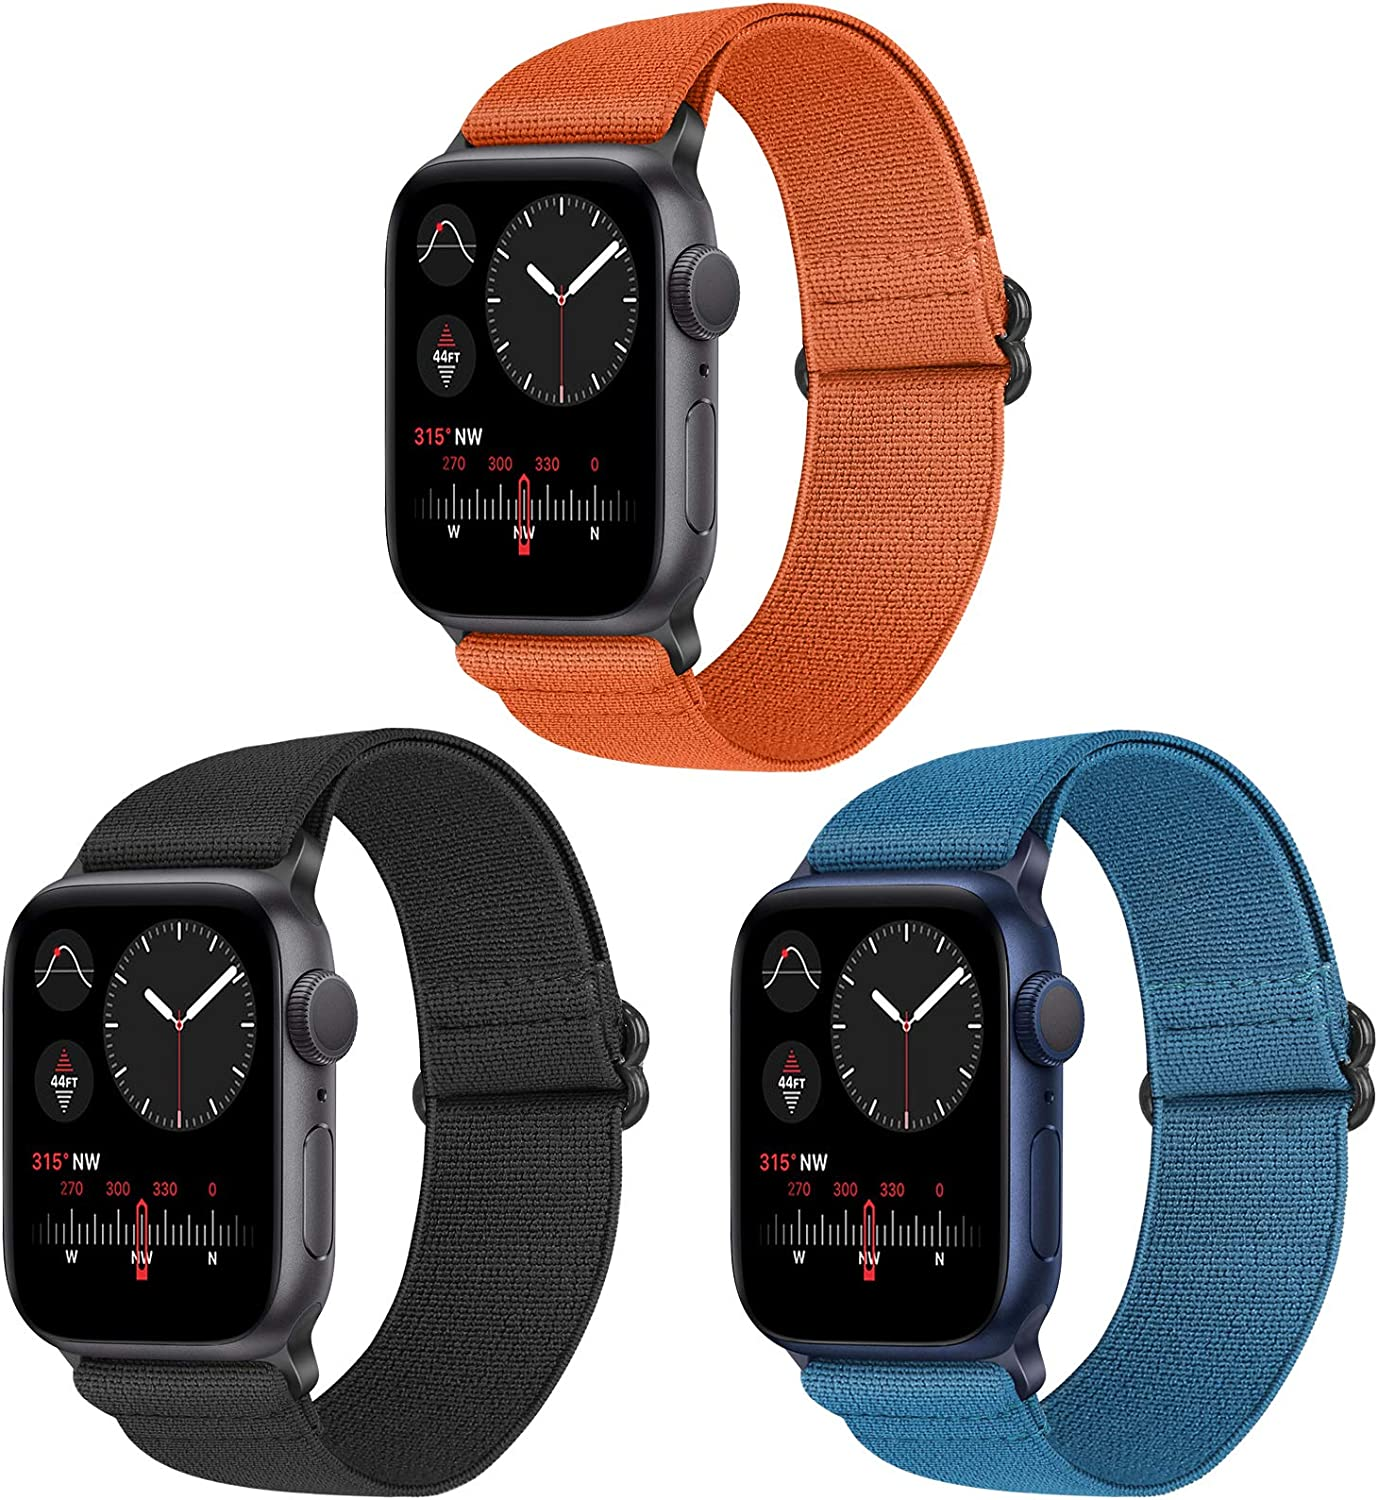 Vodtian Nylon Loop Elastic Watch Band Compatible with Apple Watch 42mm 44mm, Women Men Stretchy Adjustable Replacement Sport Straps for iWatch Series 6/5/4/3/2/1/SE (Black+Navy Blue+Orange, 42mm/44mm)